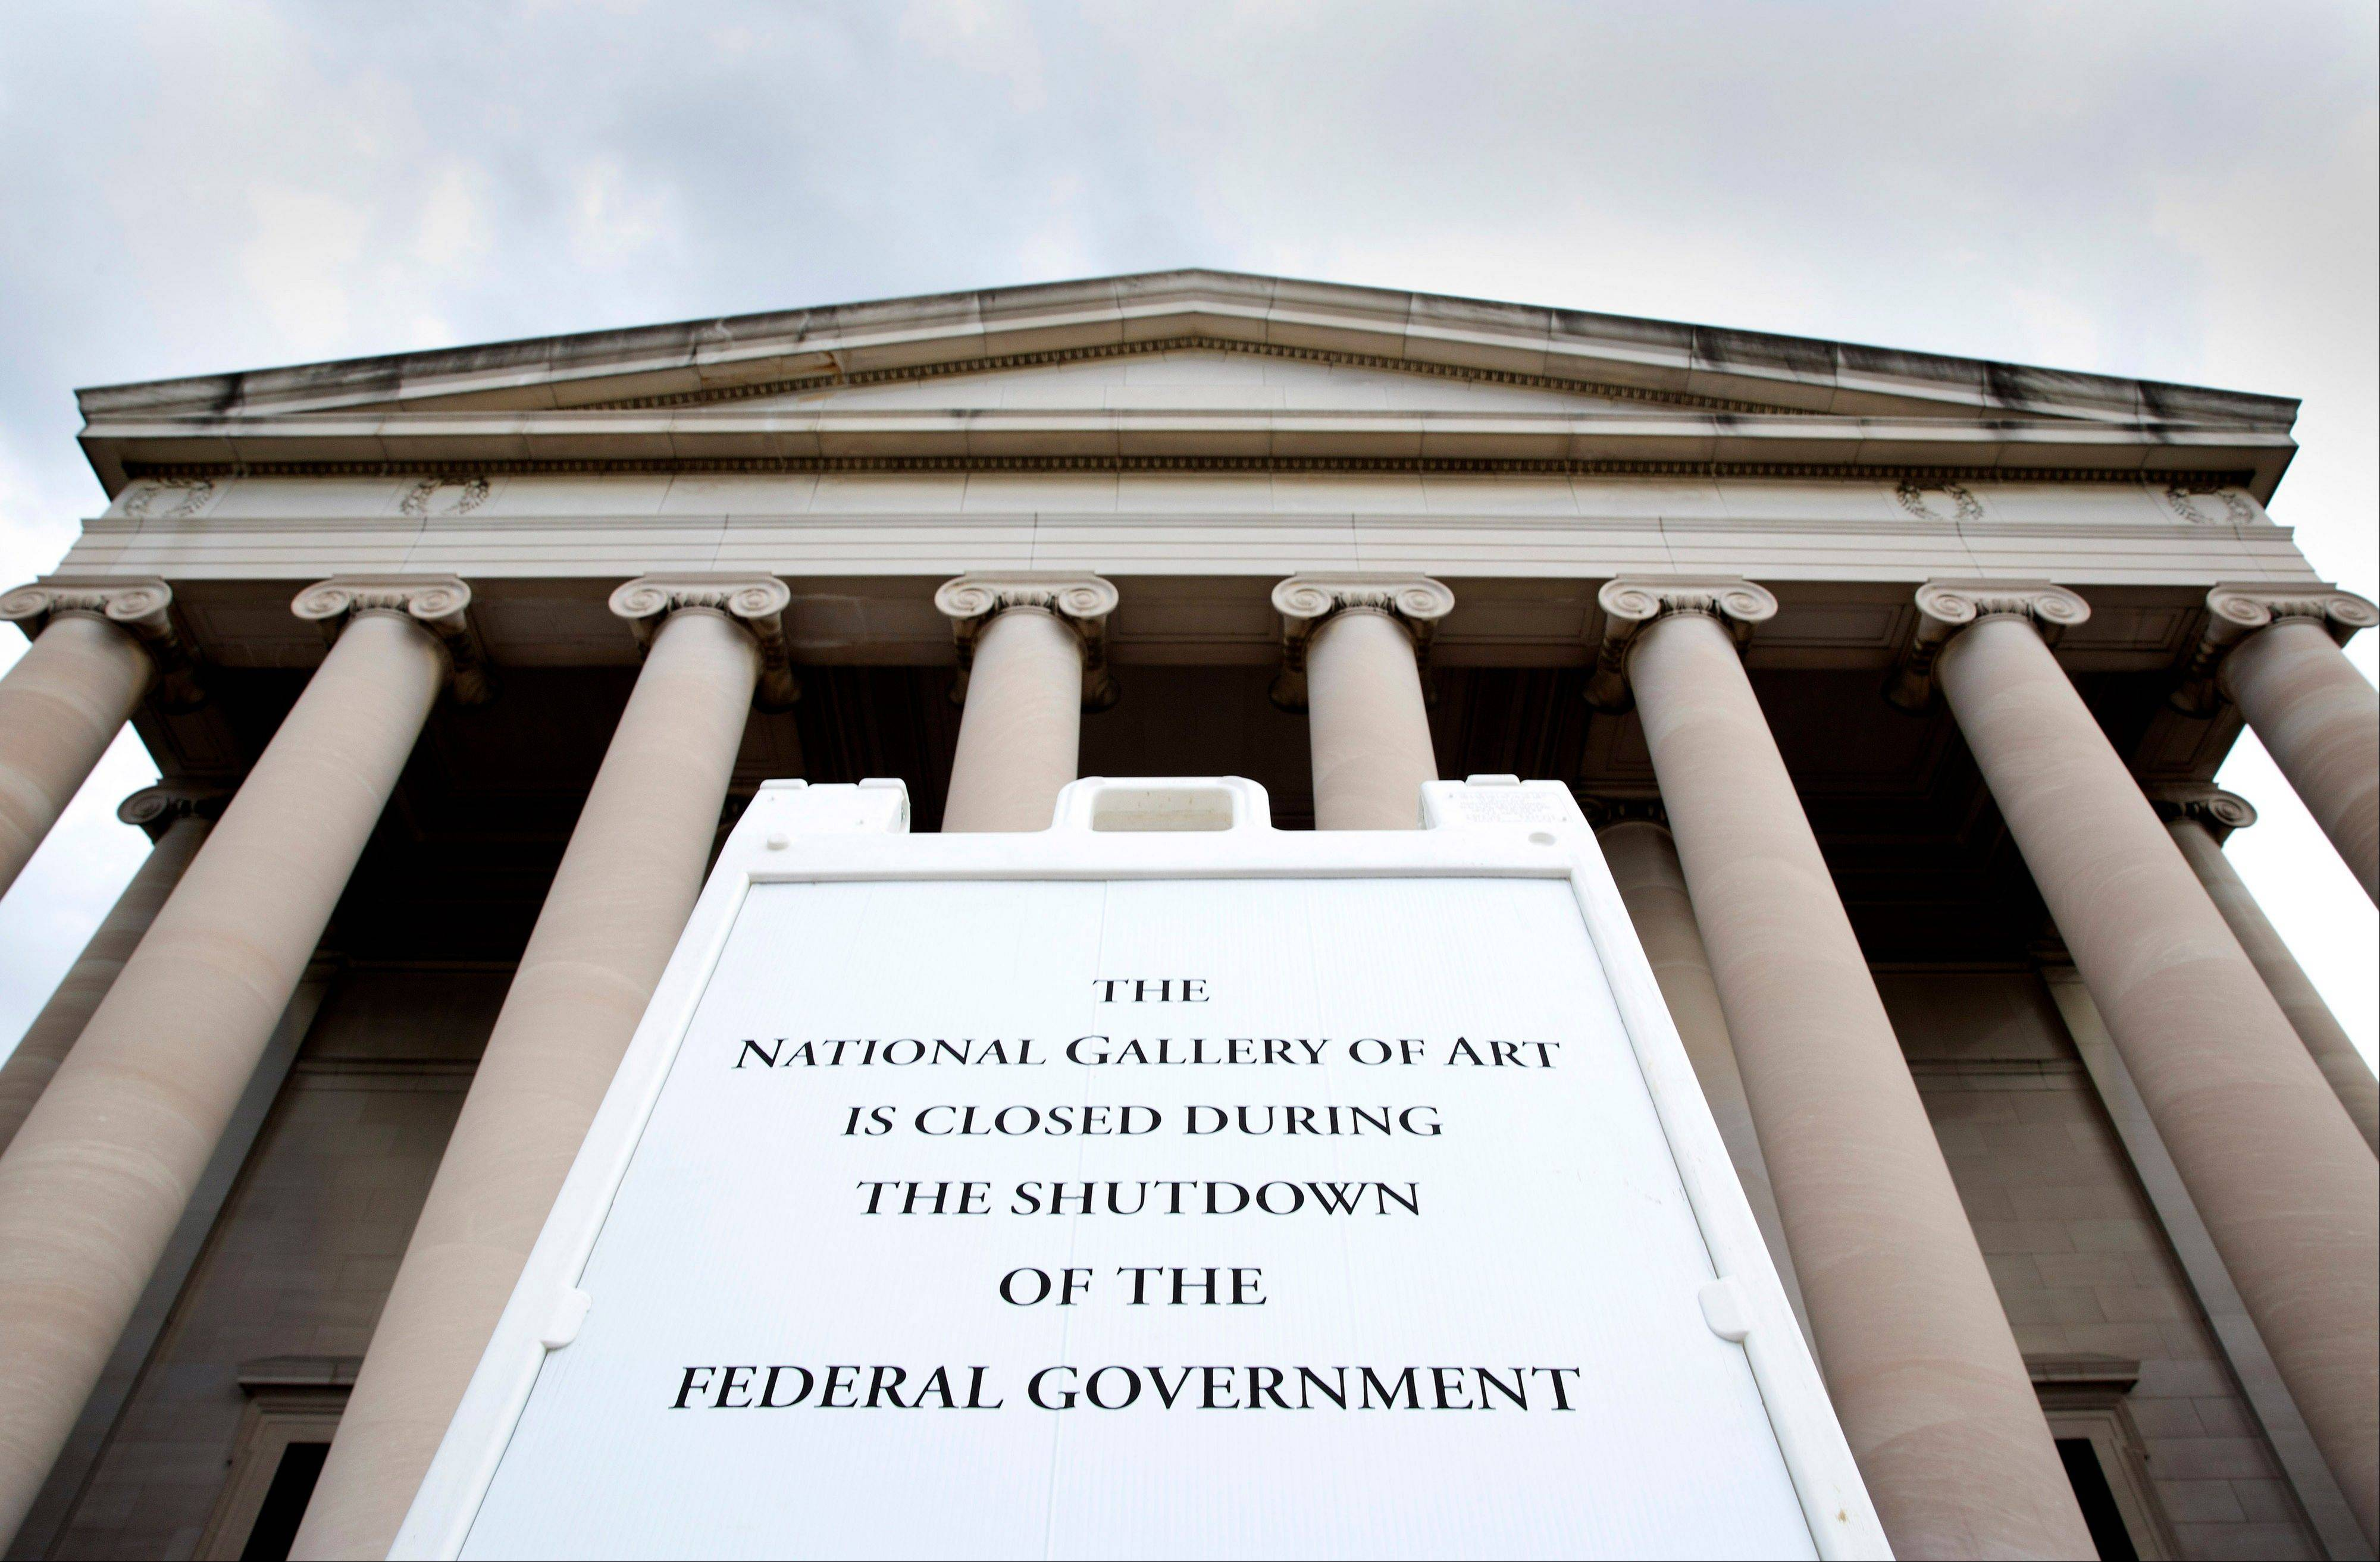 A sign announces the closure of the National Gallery due to the partial government shutdown in Washington, D.C., this week.